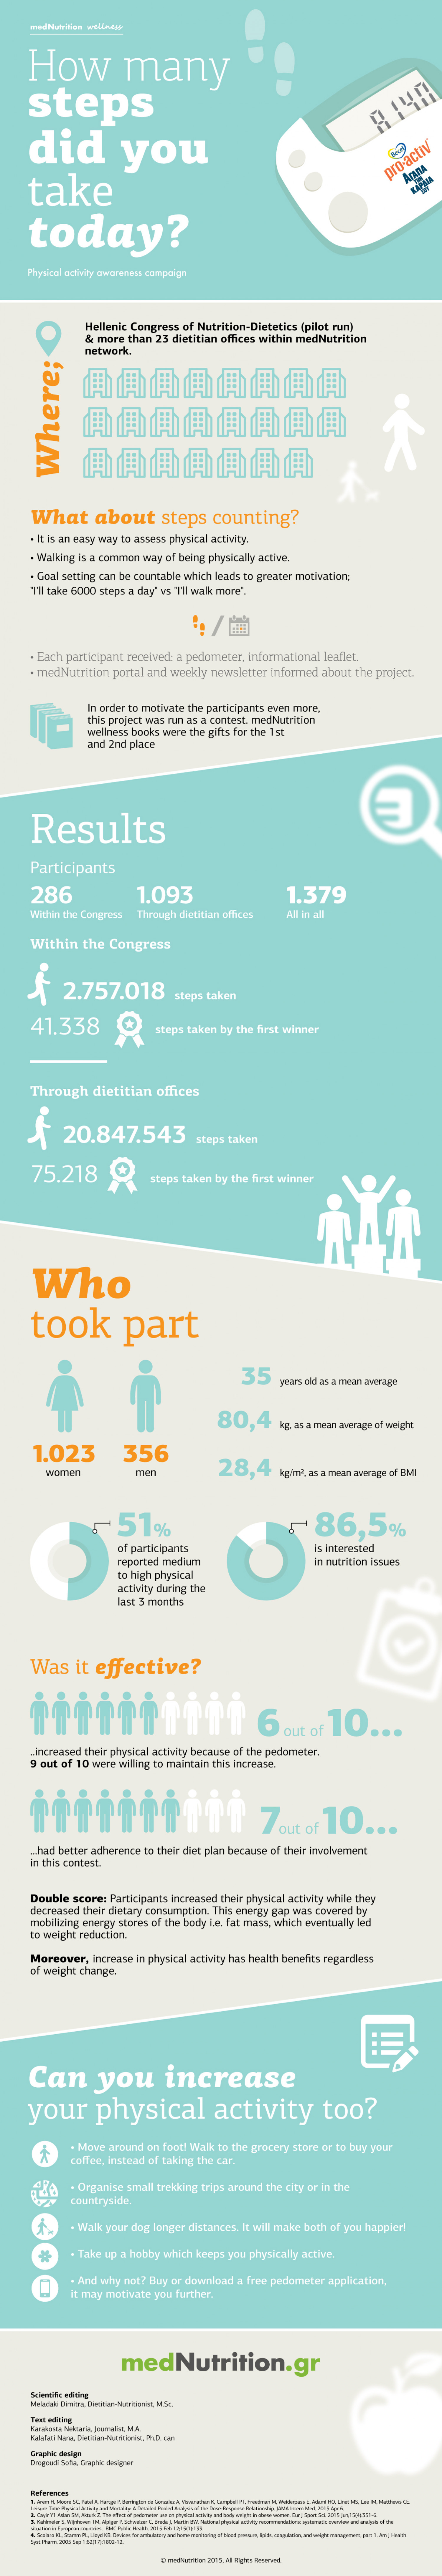 How many steps have you taken today? Infographic